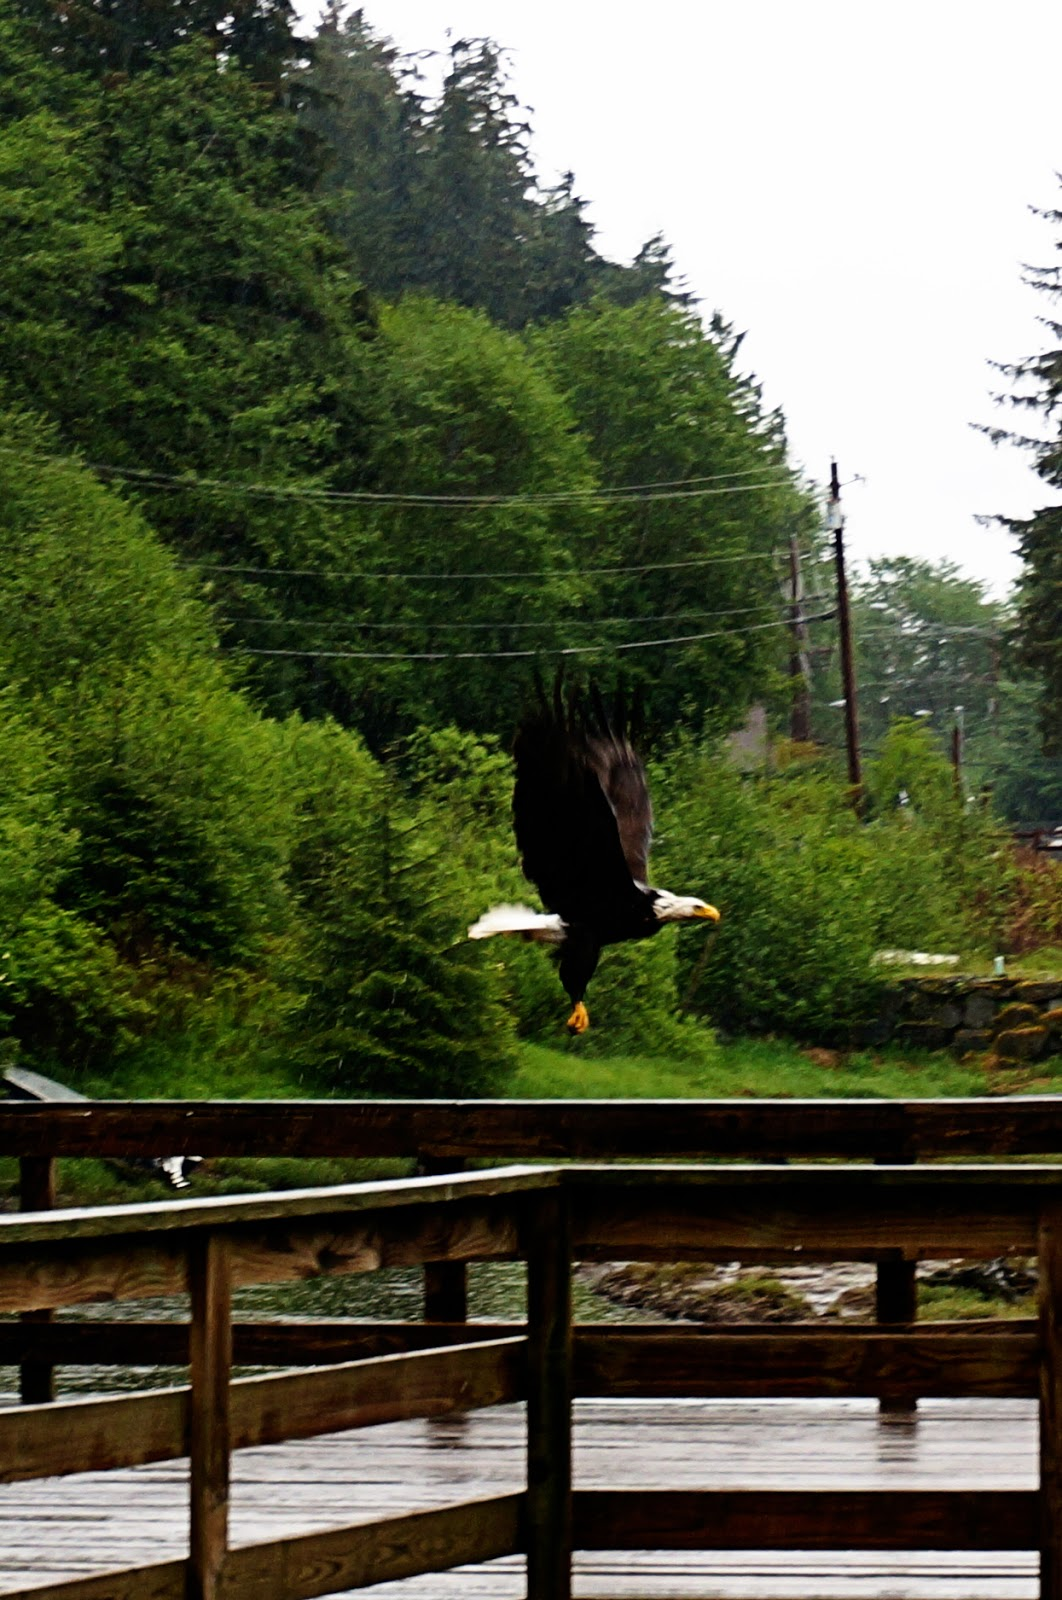 ketchikan eagle soaring alaskan cruise review